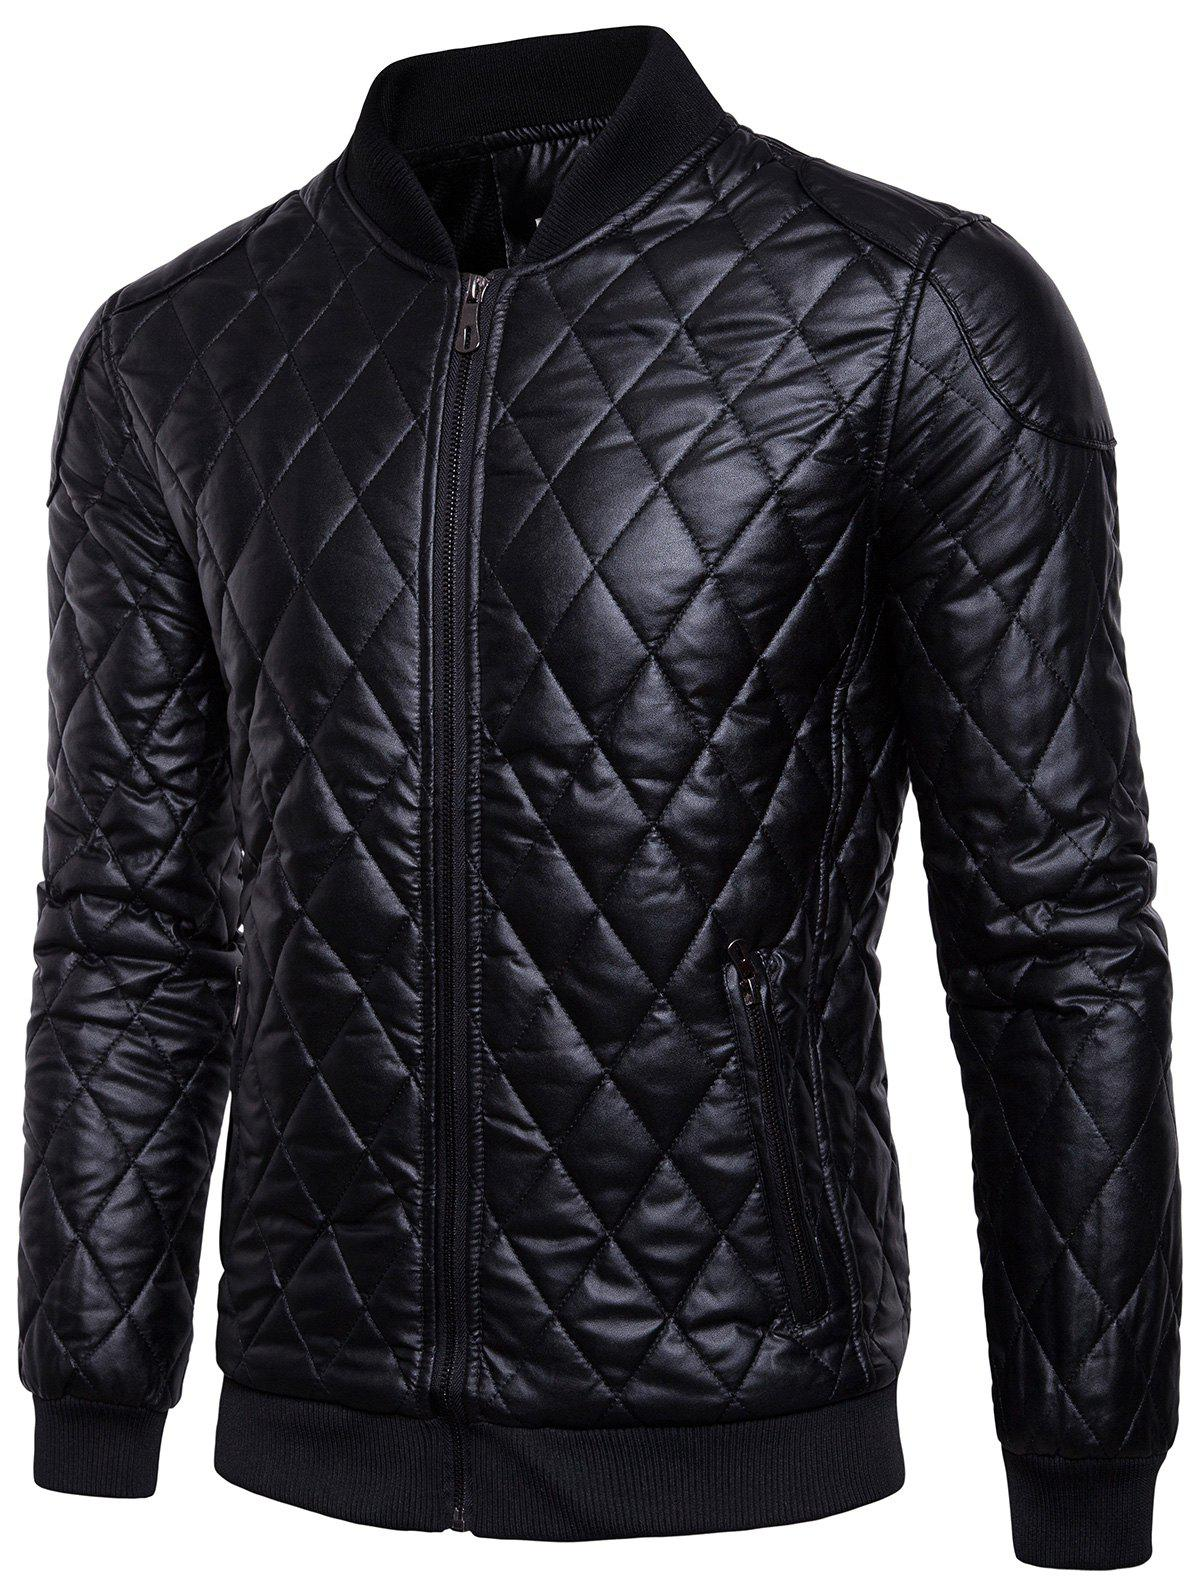 Insulated Checkered Artificial Leather Jacket thirty two metcalf insulated jacket clay